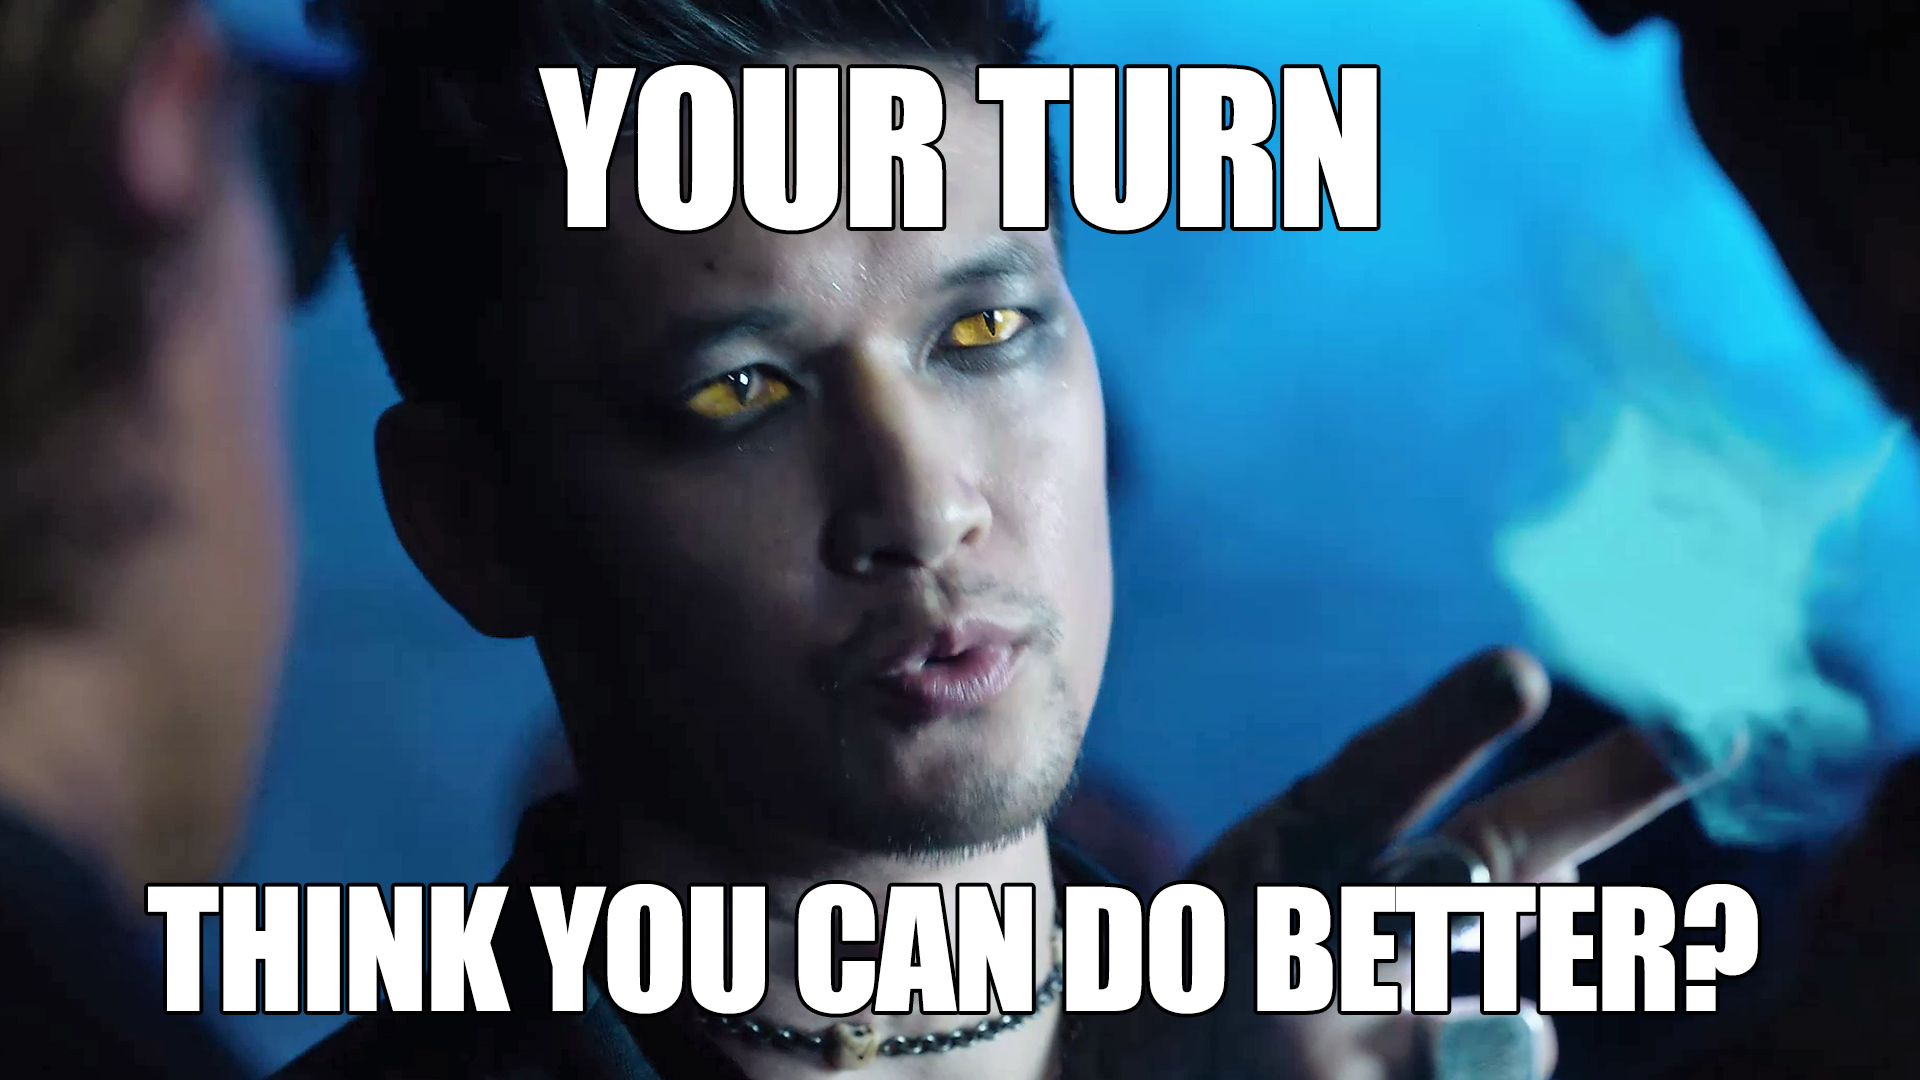 Shadowhunters - CHALLENGE TIME: We Want You To Meme Magnus Like He's Never Been Memed Before! - 1008